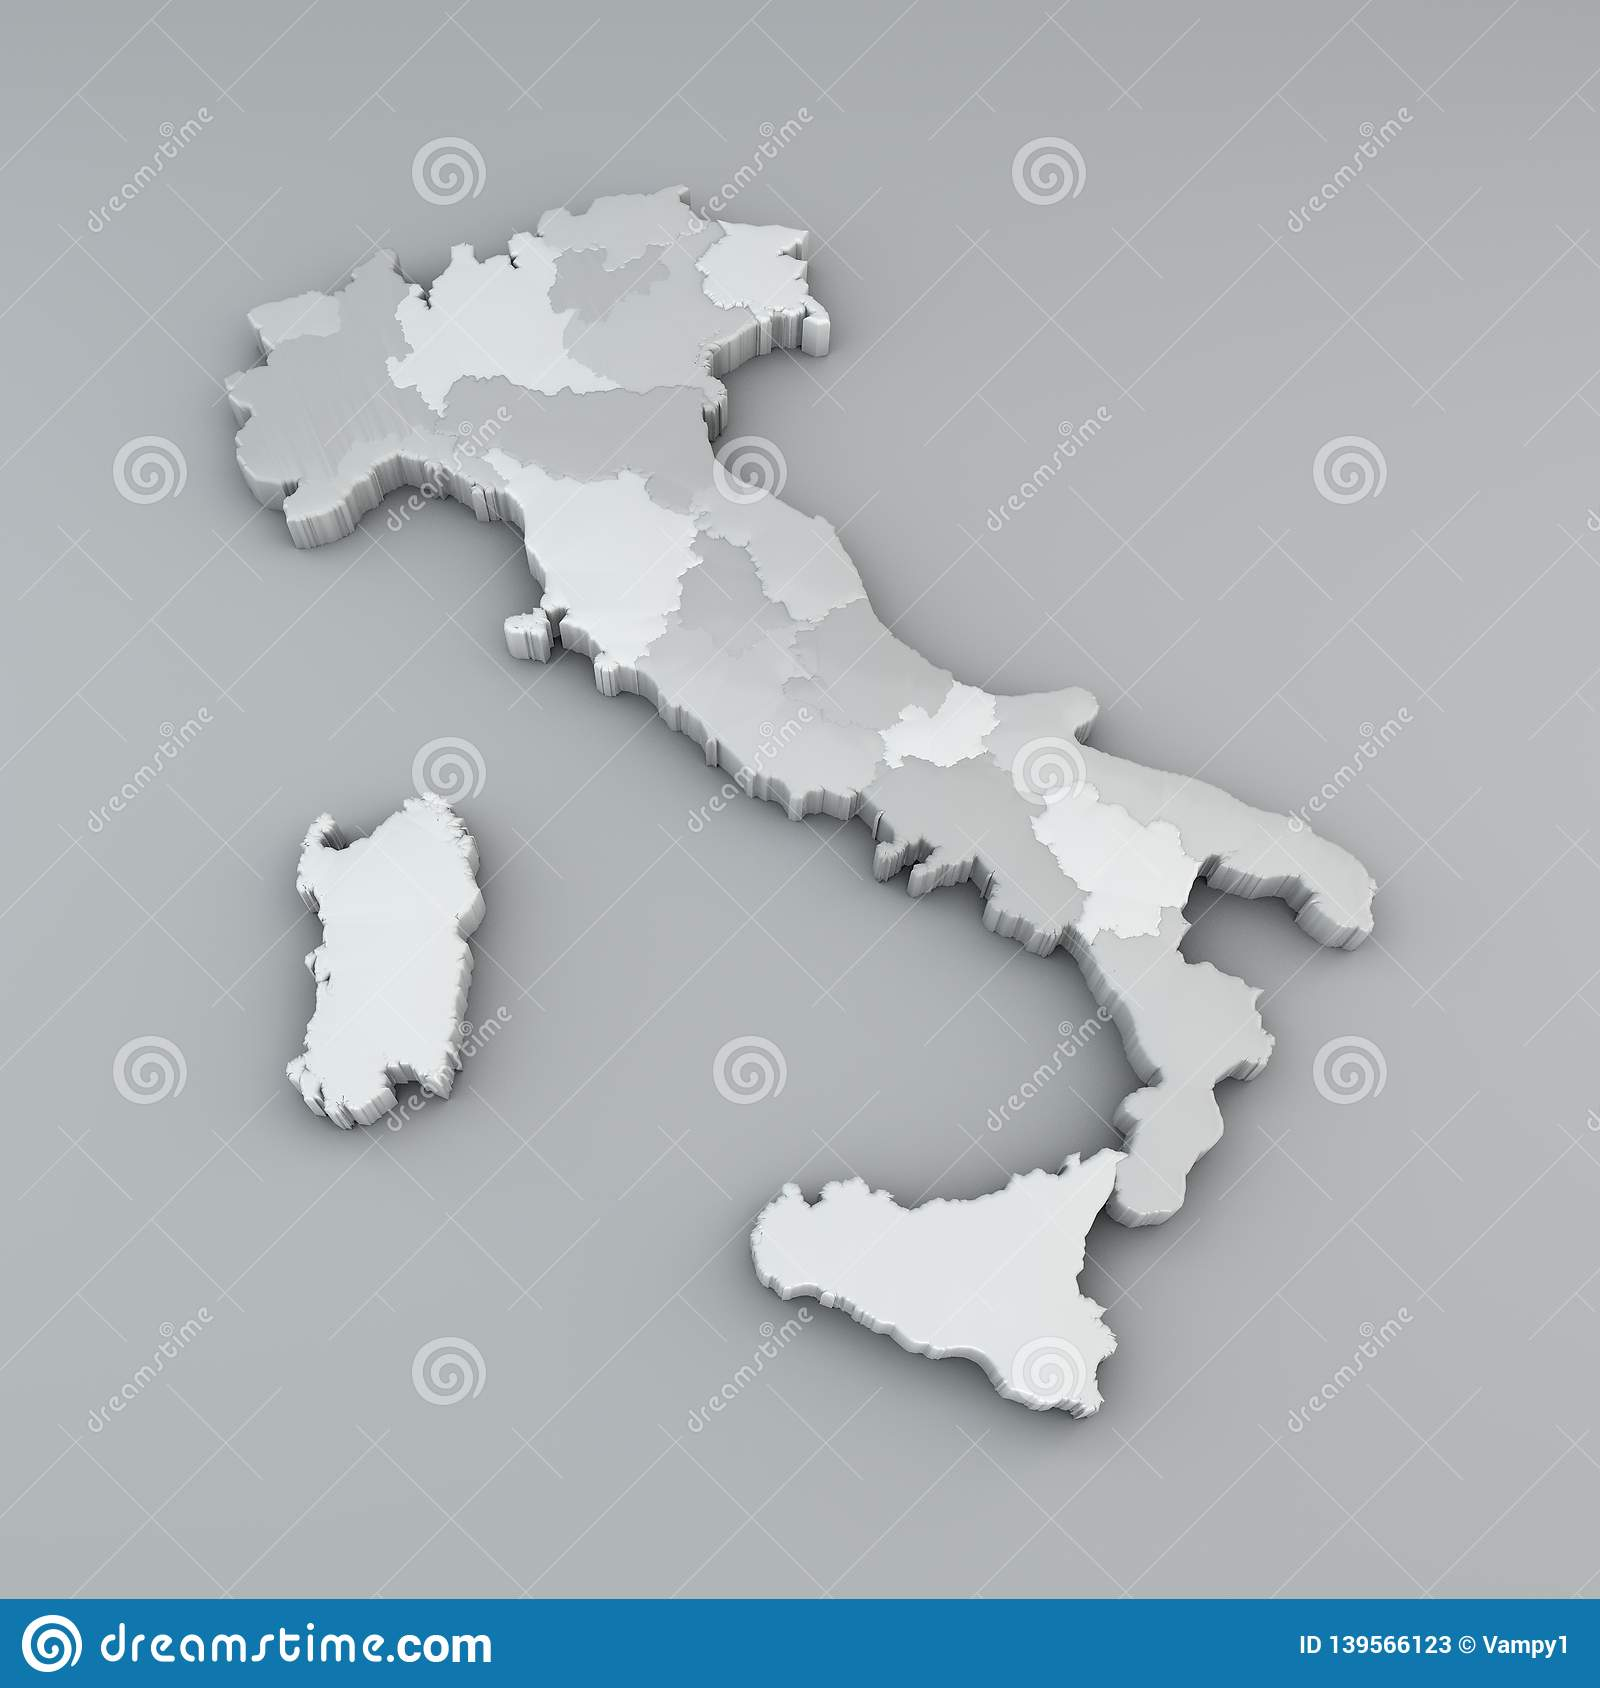 Map Of Italy In 3d, Division In Regions And Autonomous Provinces ...